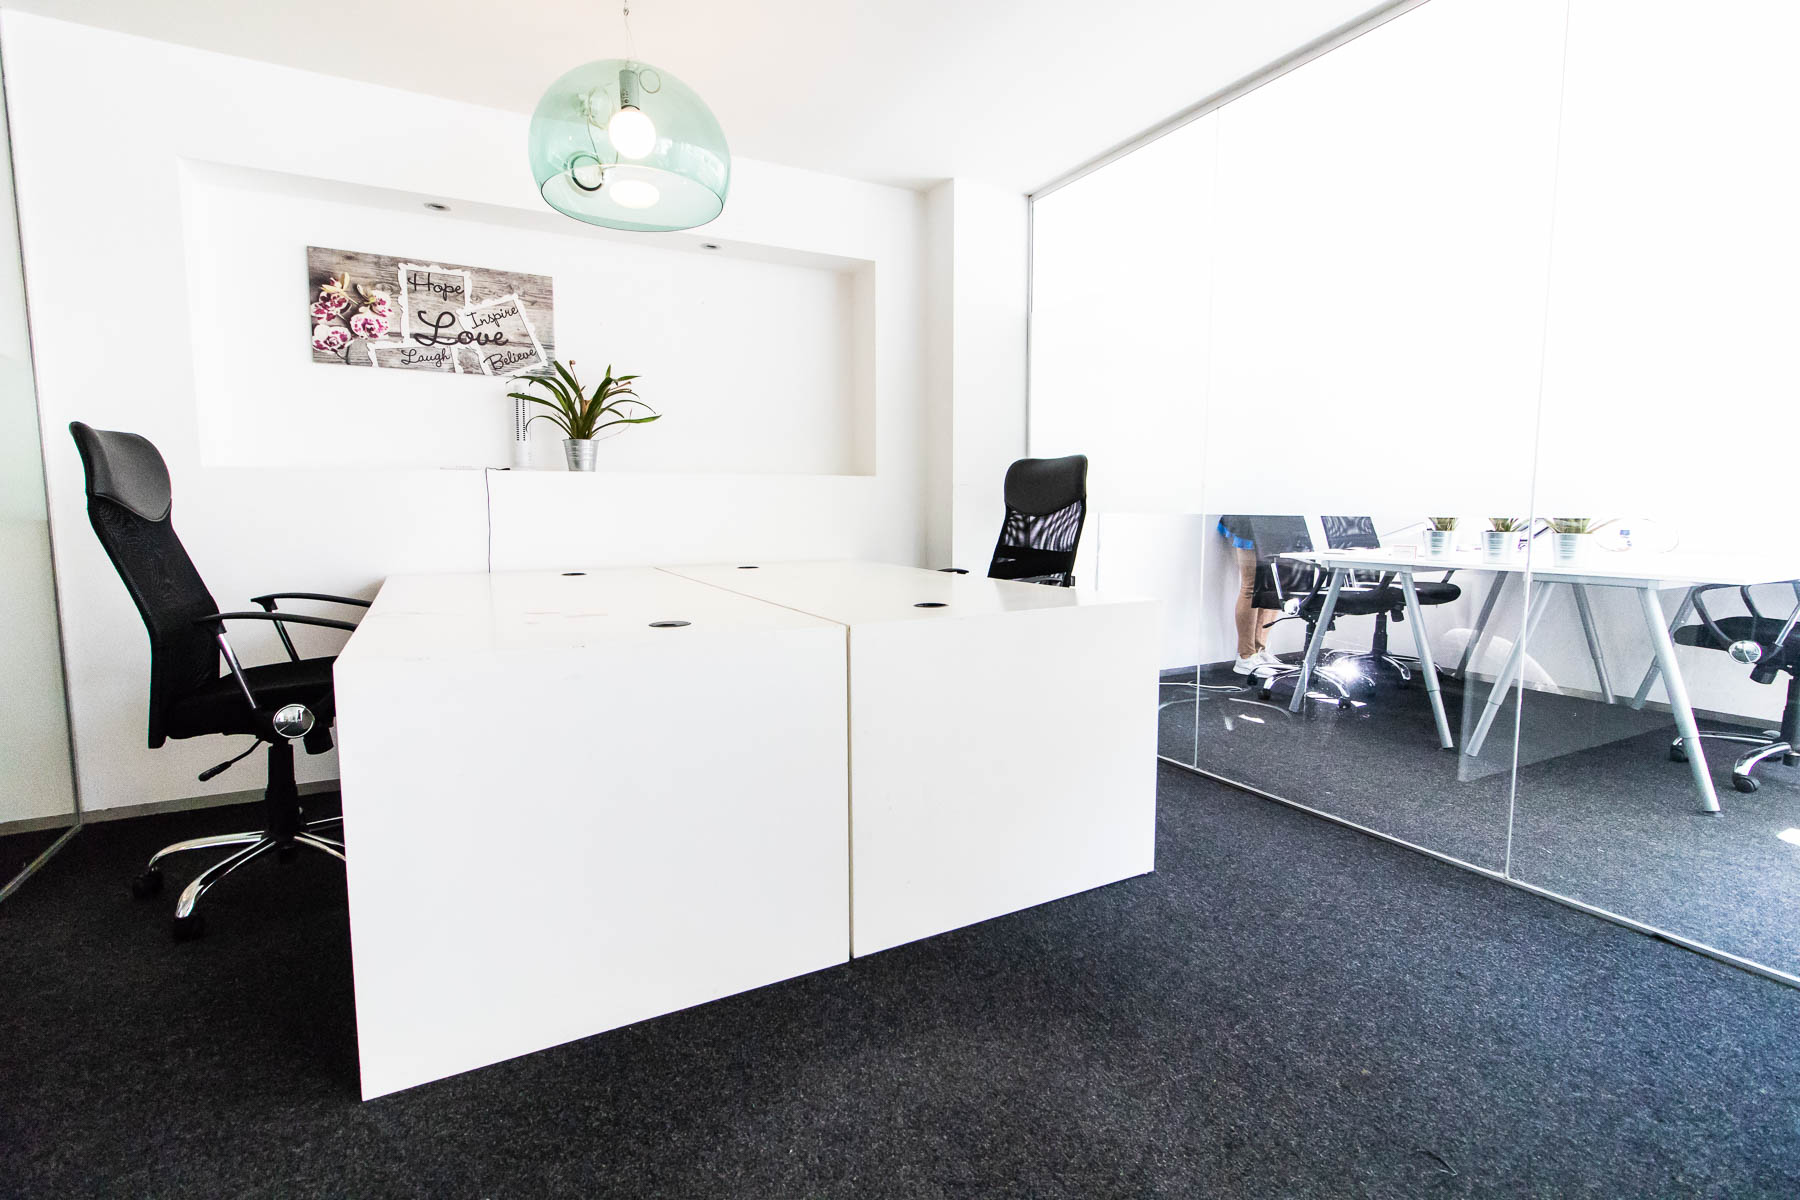 Rent office space Overtoom 47, Amsterdam (26)